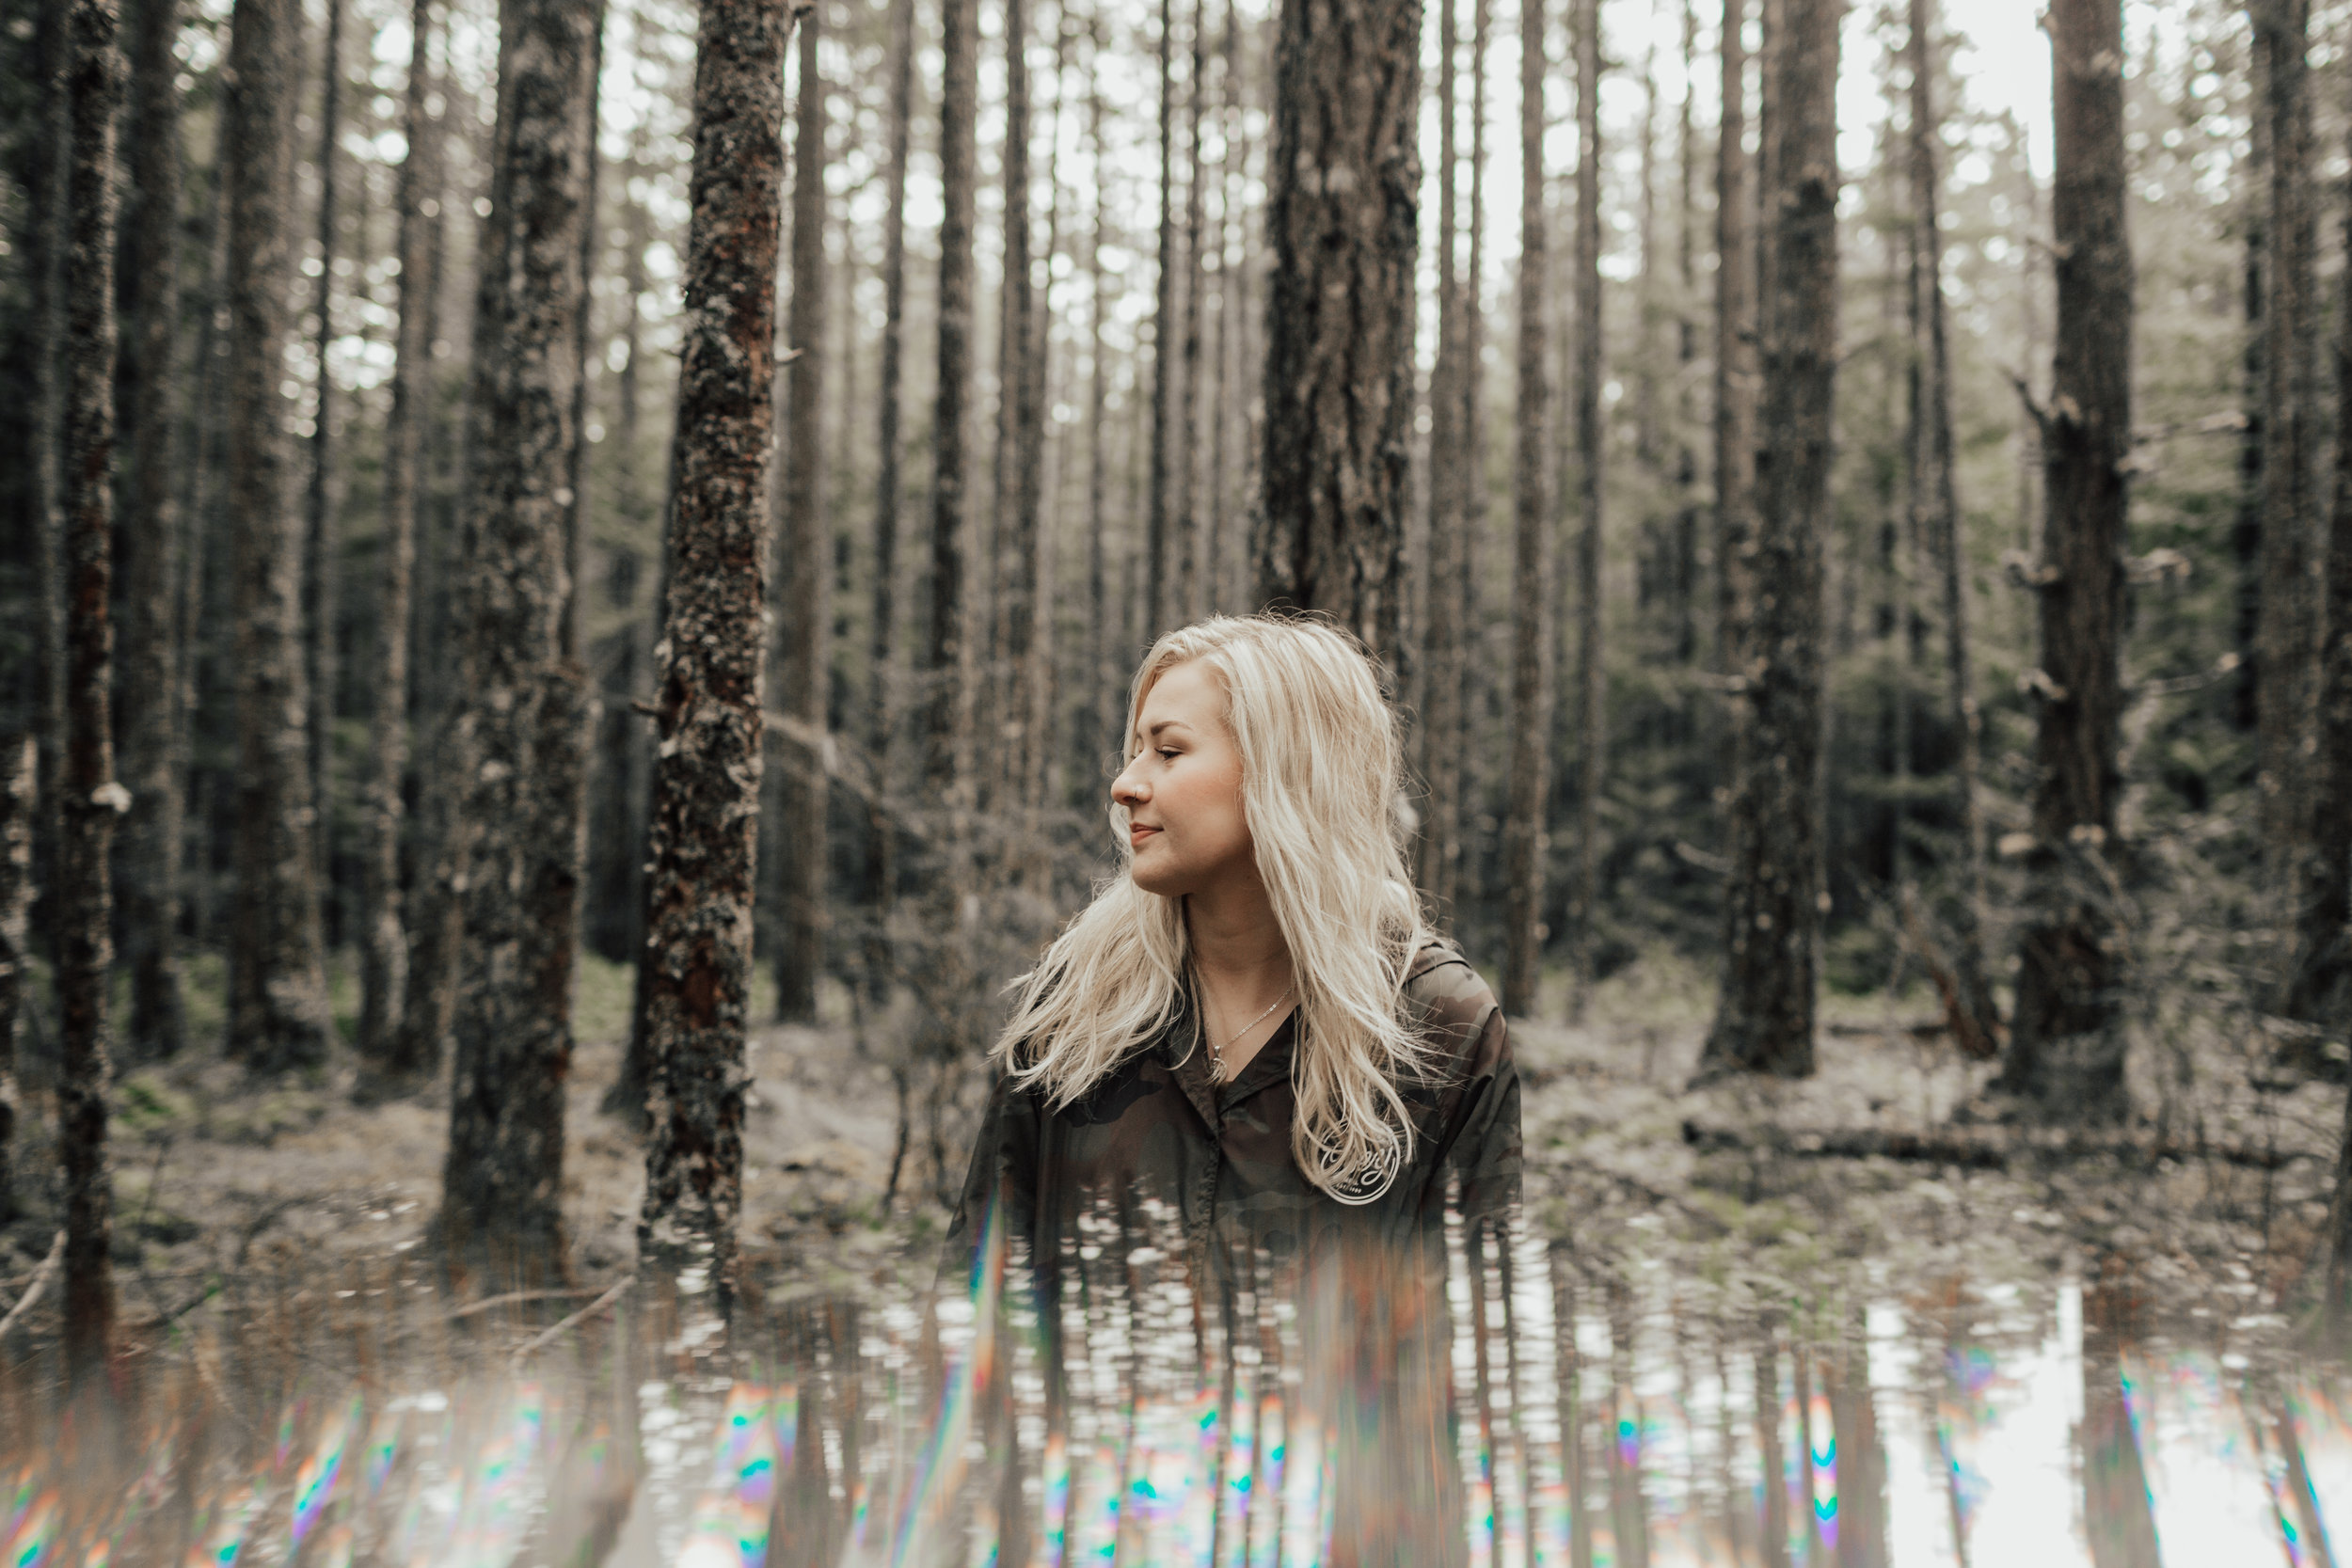 Port Angeles-Portrait-Photographer-PNW-olympic peninsula-northwest-sequim-kayla dawn photography-kayladawnphoto-portraiture-nature10.jpg